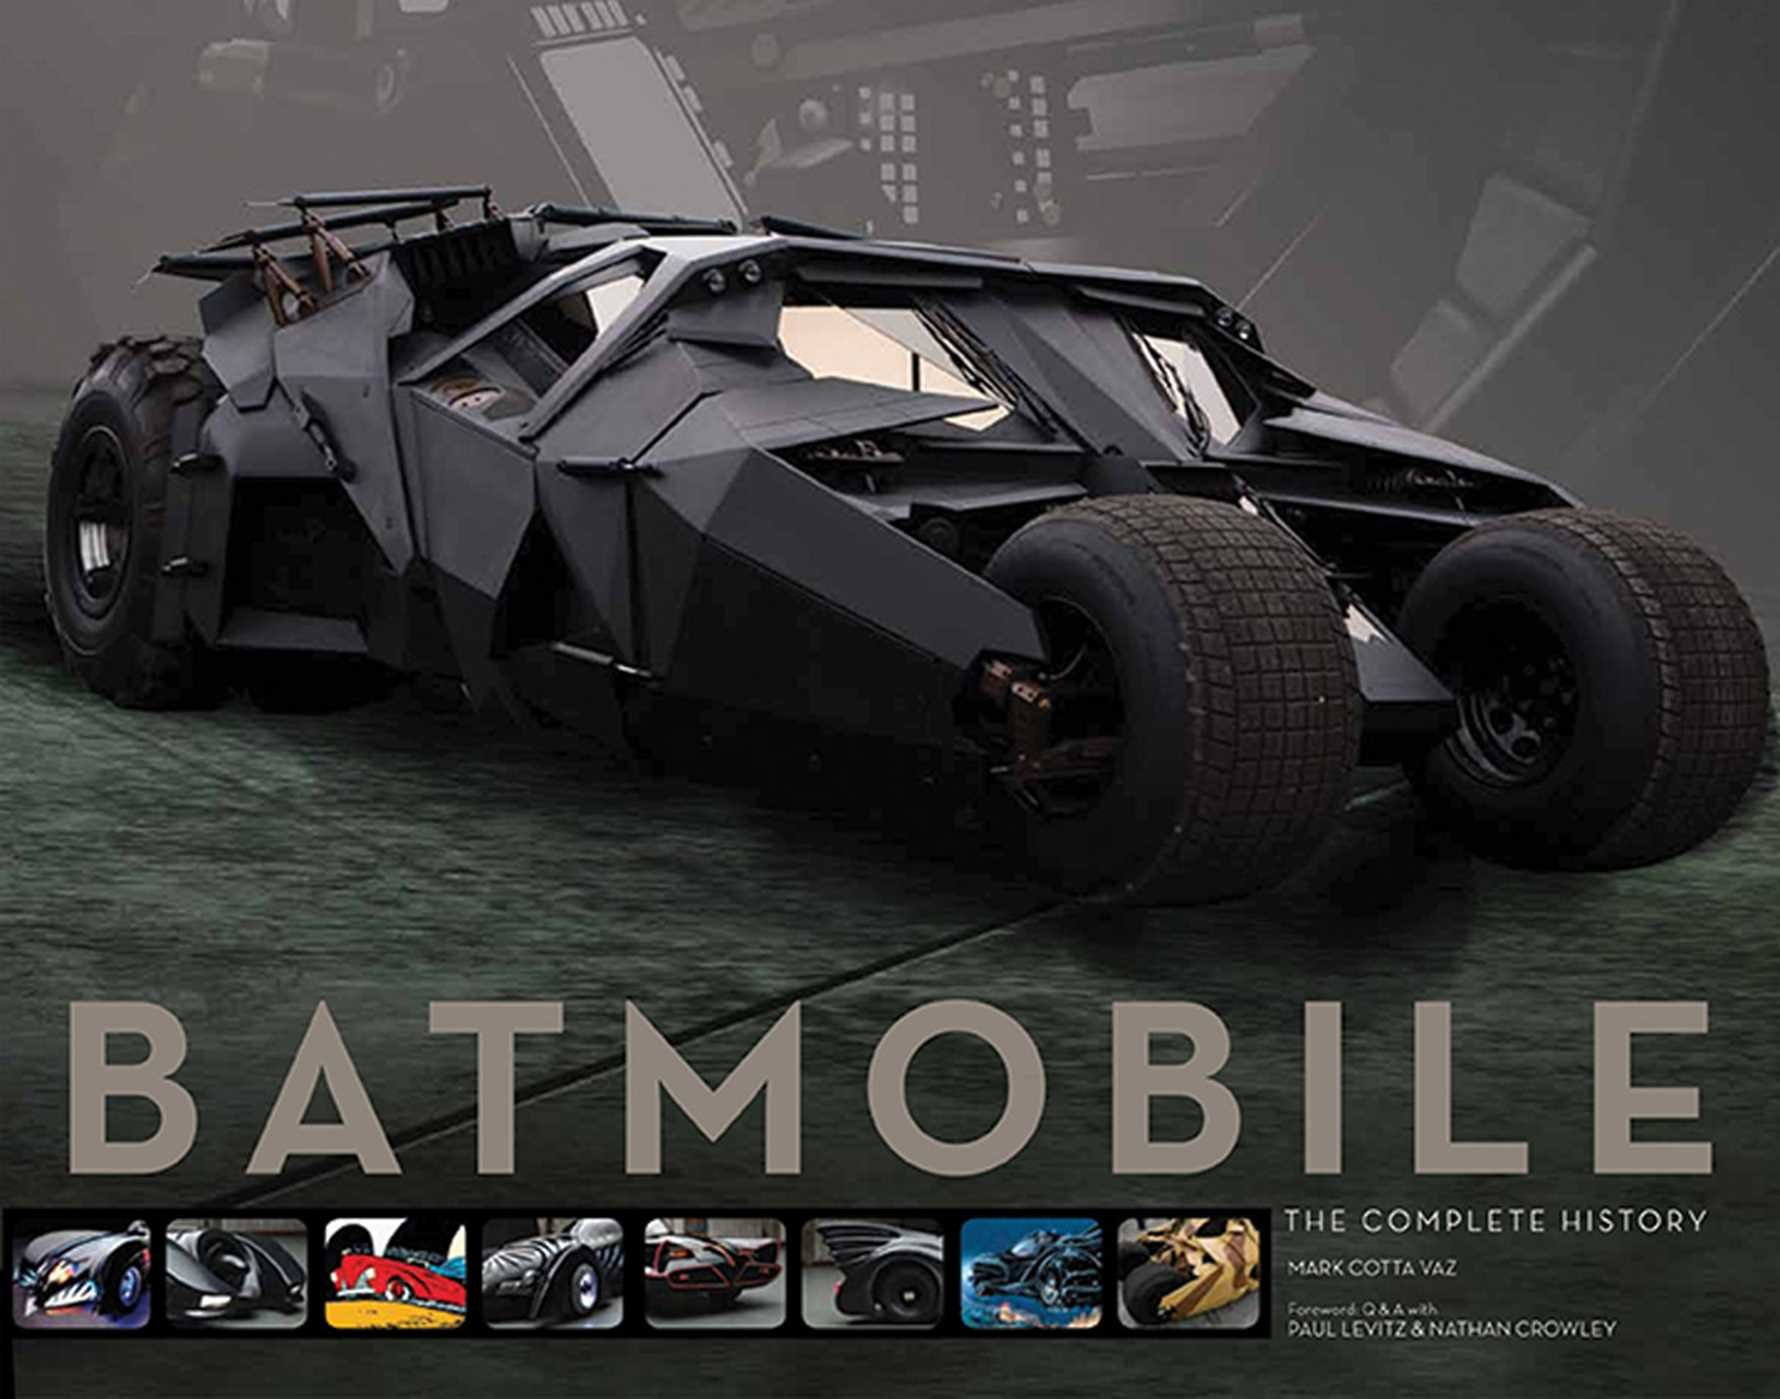 Batmobile: The Complete History: Mark Cotta Vaz: 9781608871032: Amazon.com:  Books